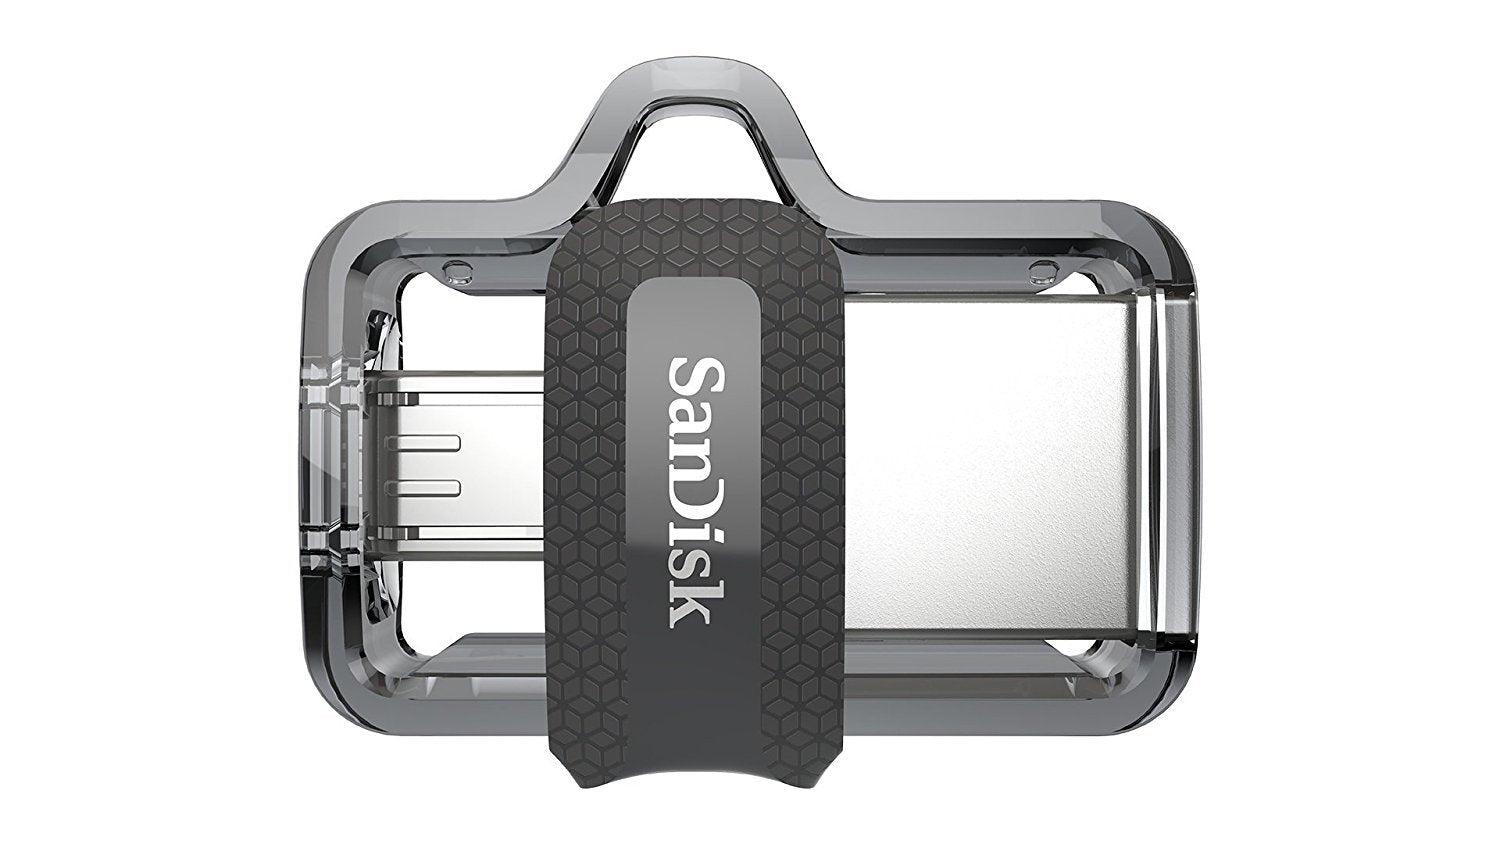 SanDisk Ultra Dual 16GB USB 3.0 OTG Pen Drive (Black)